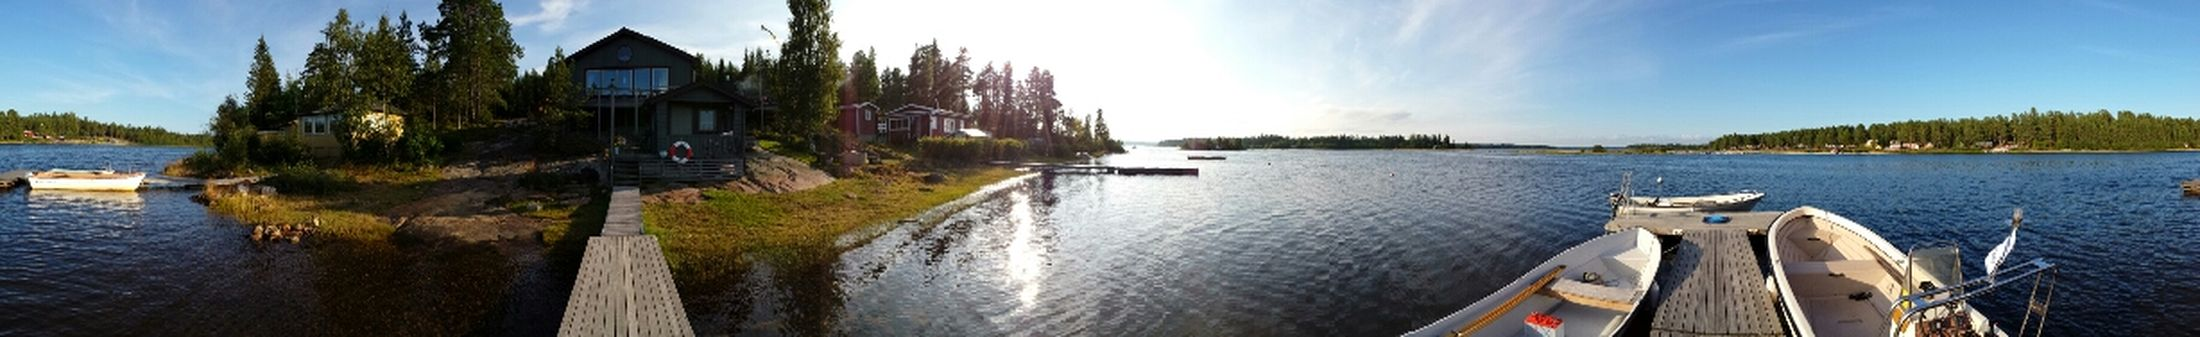 Enjoying life at my friends cabin - Halsön, North of Sweden Relaxing Summer Beautiful